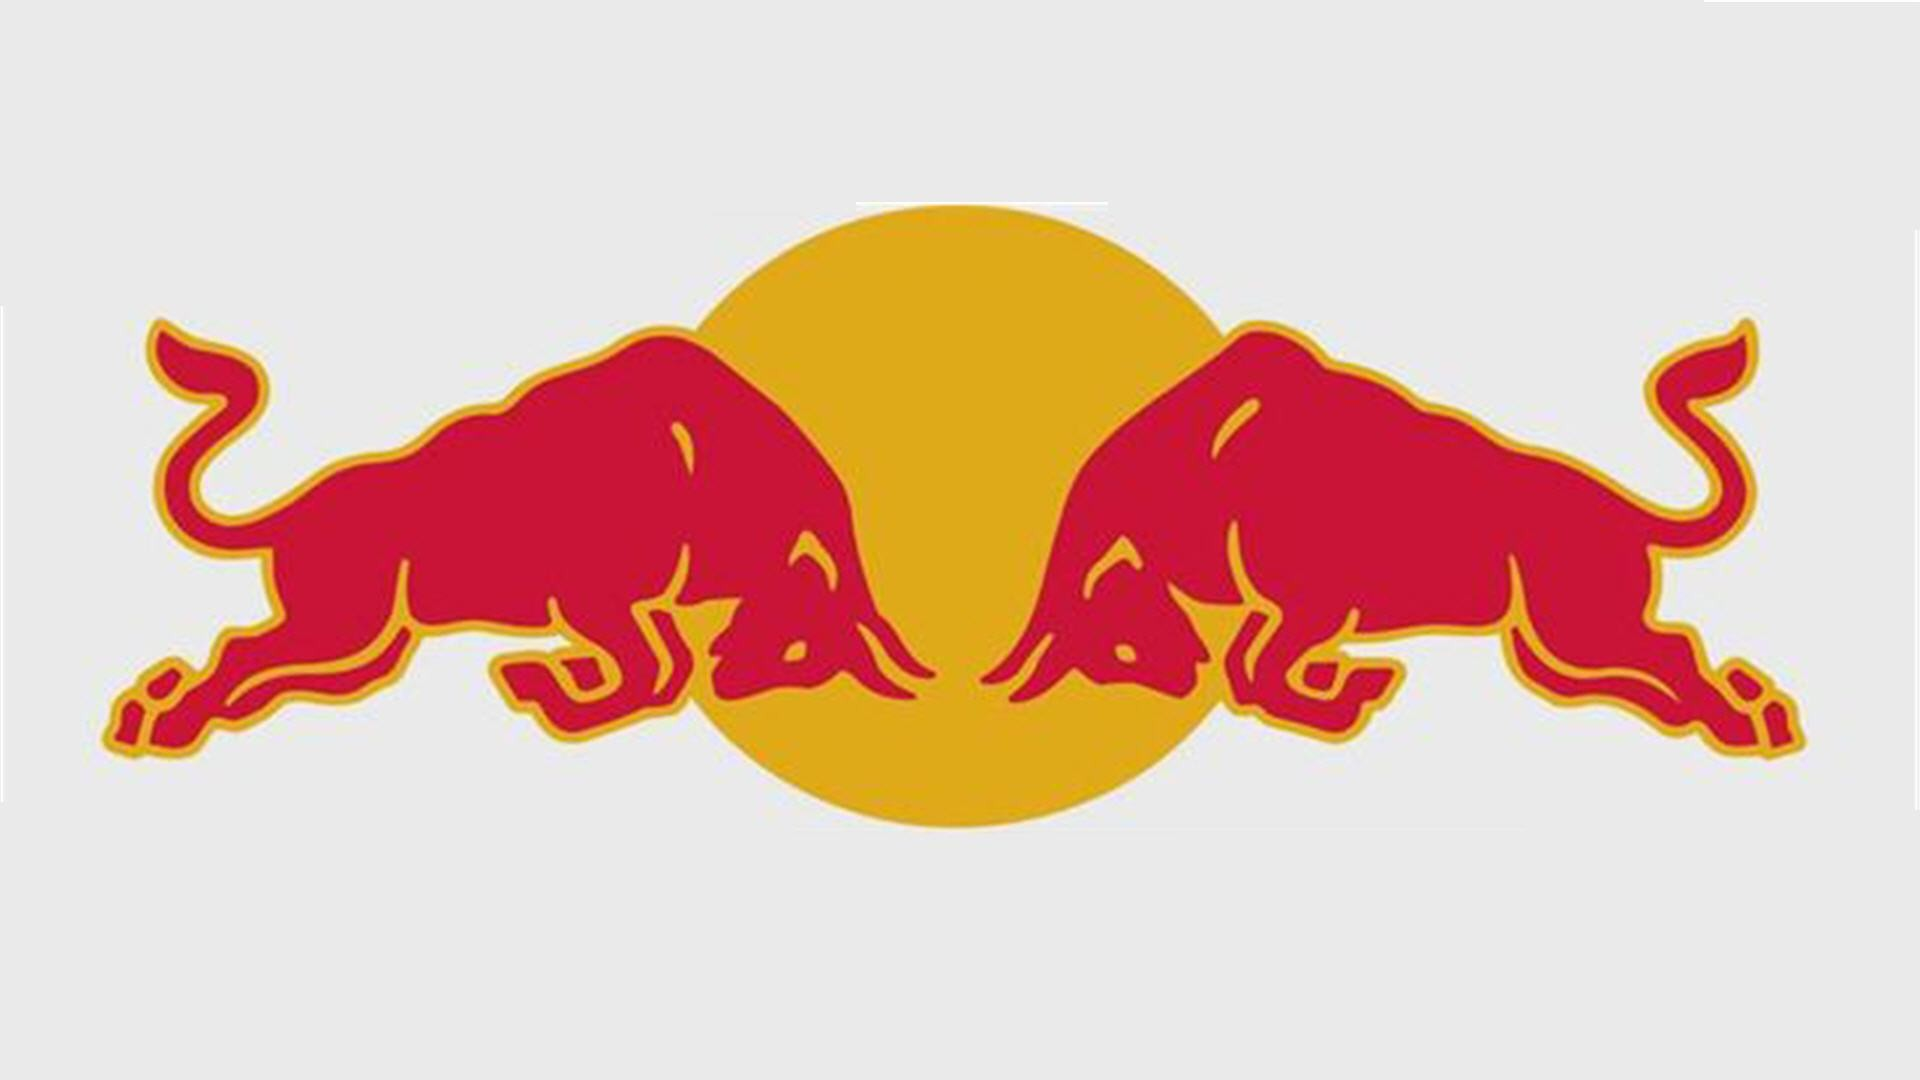 1920x1080 Amazing Logo Wallpaper HD Red Bull Image Gallery Free Download Logo